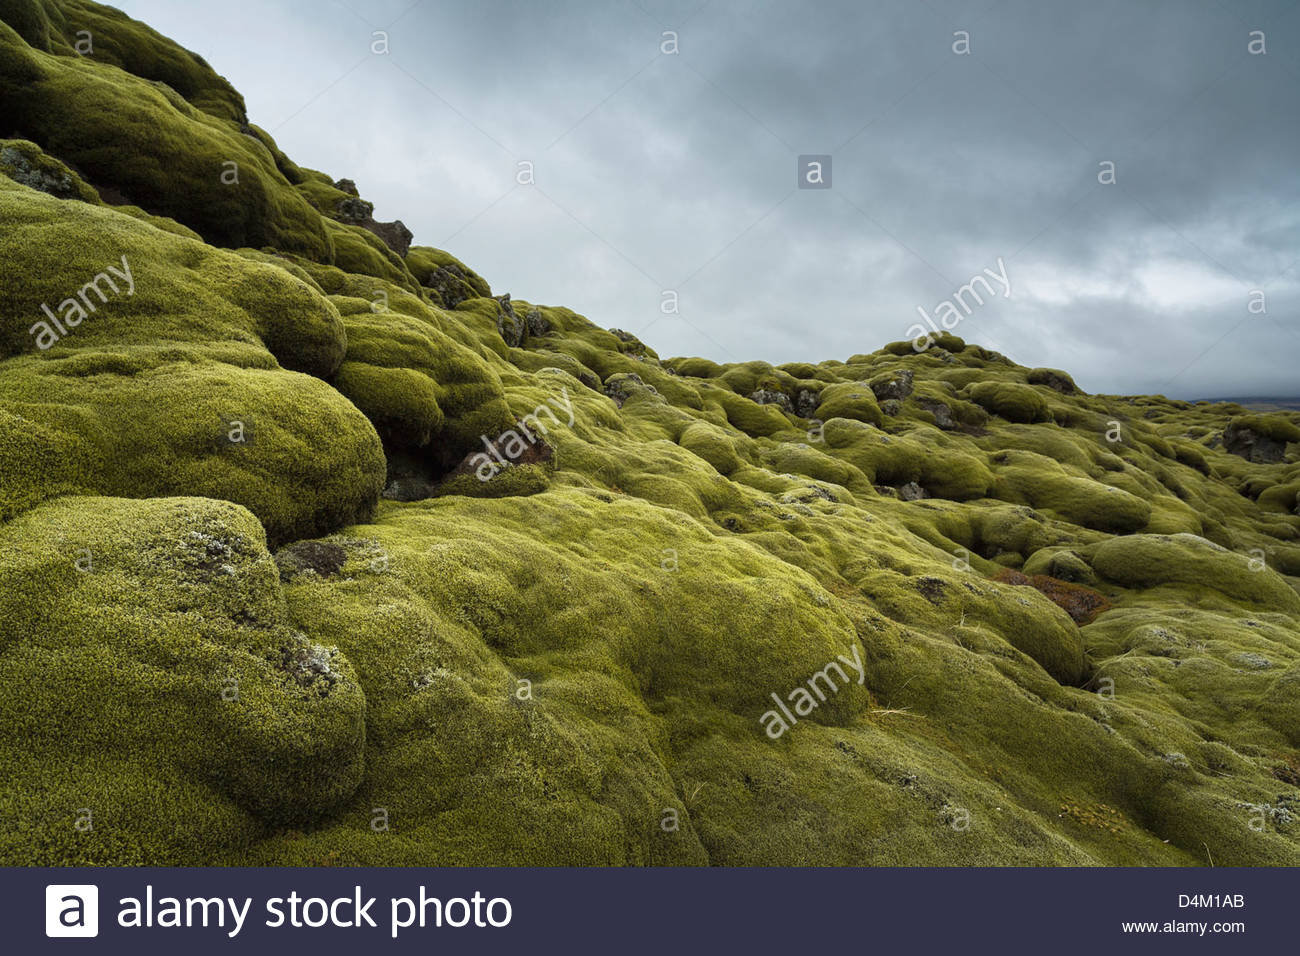 Moss growing on rocky hill - Stock Image